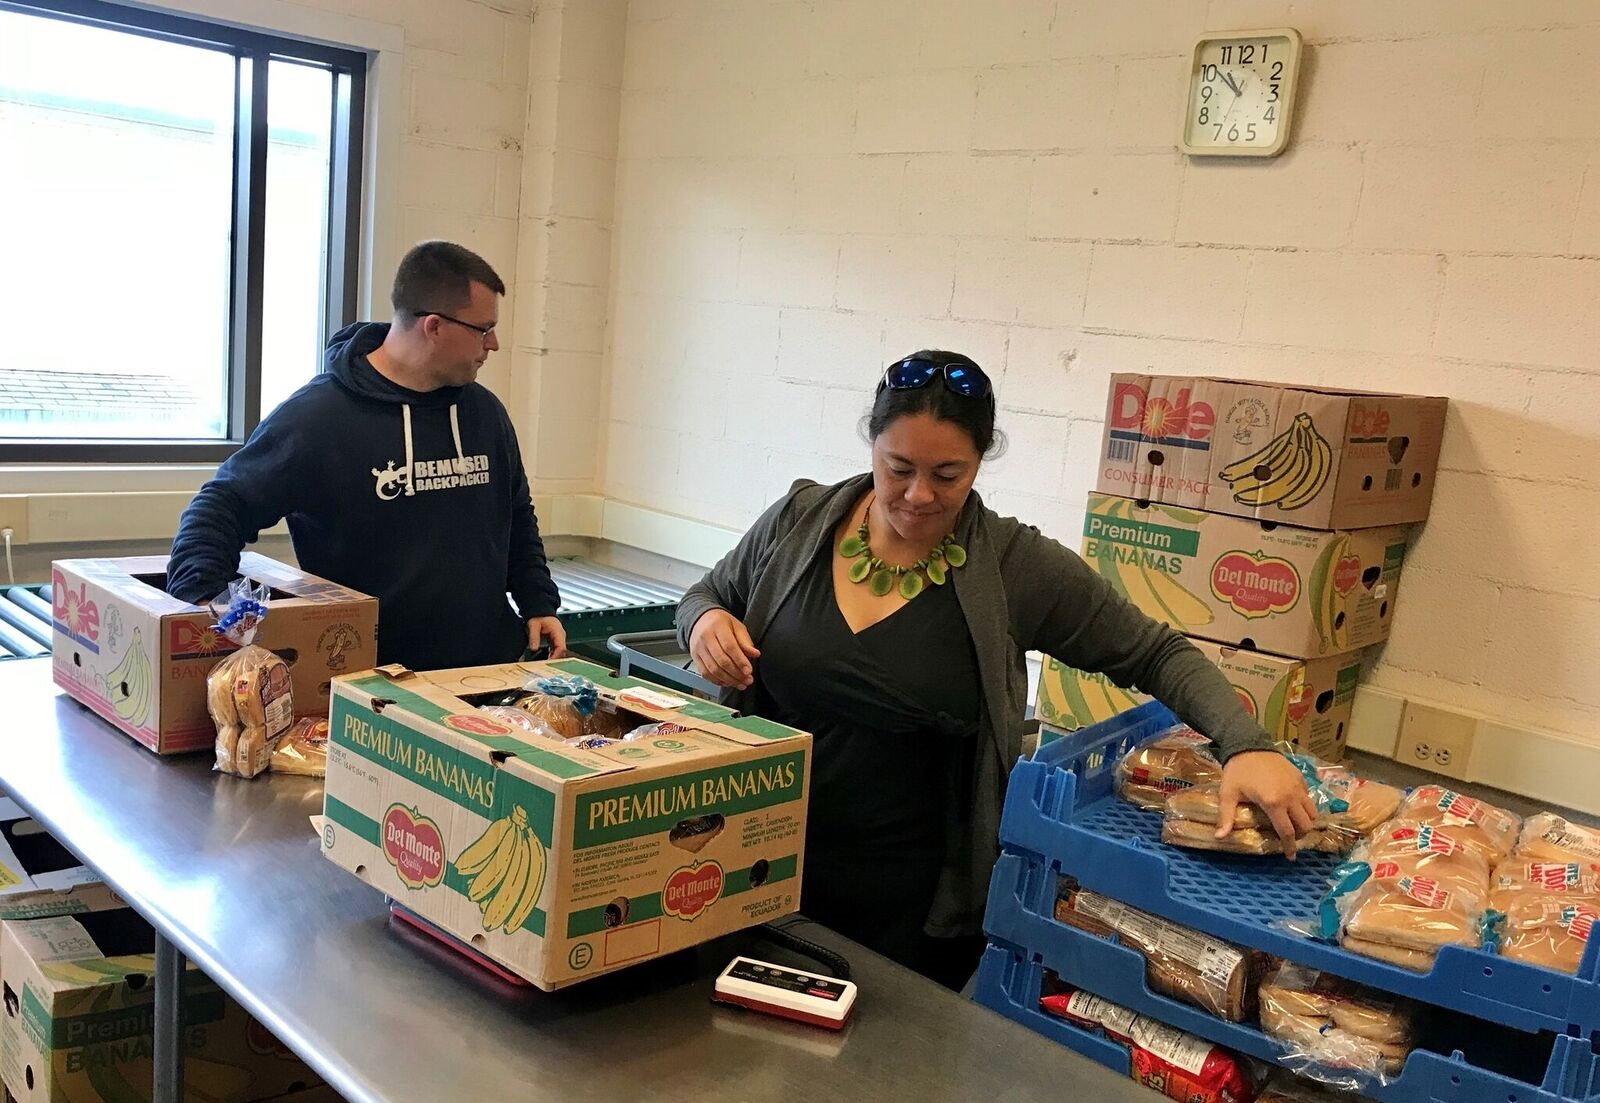 Volunteering in the food bank of the southern Tier